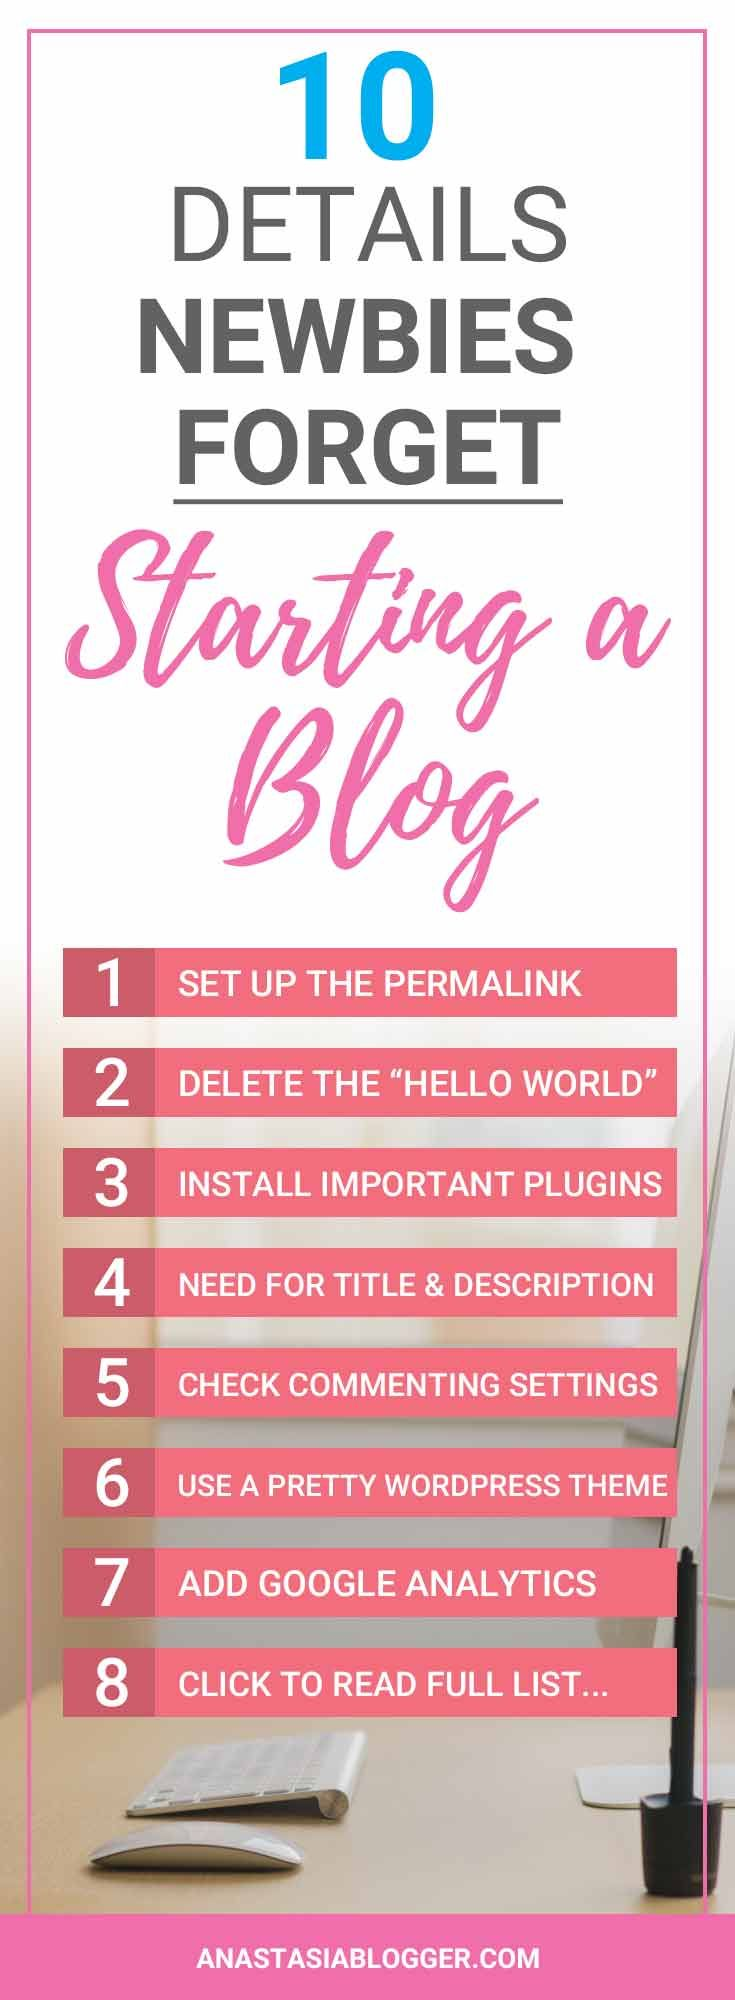 Need a checklist for starting a blog? Step-by-step guide will teach you how to start a blog and avoid the common mistakes made by new bloggers. Check on AnastasiaBlogger.com! #blogging #bloggingtips